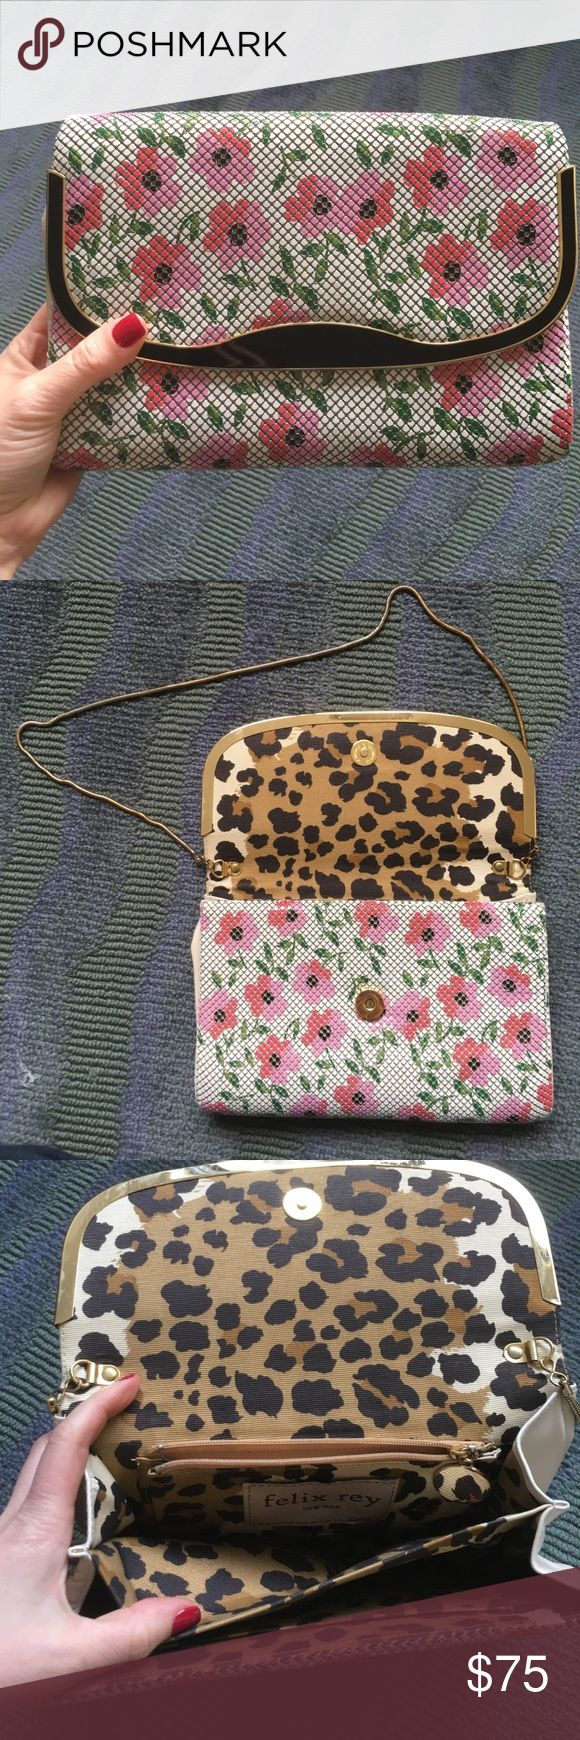 Felix Rey mesh metal clutch 🎀💕 Felix Rey metal clutch with a gold strap that can be tucked inside the purse. Excellent condition inside and out with only minor wear. A great springtime purse 🌺 Bags Clutches & Wristlets